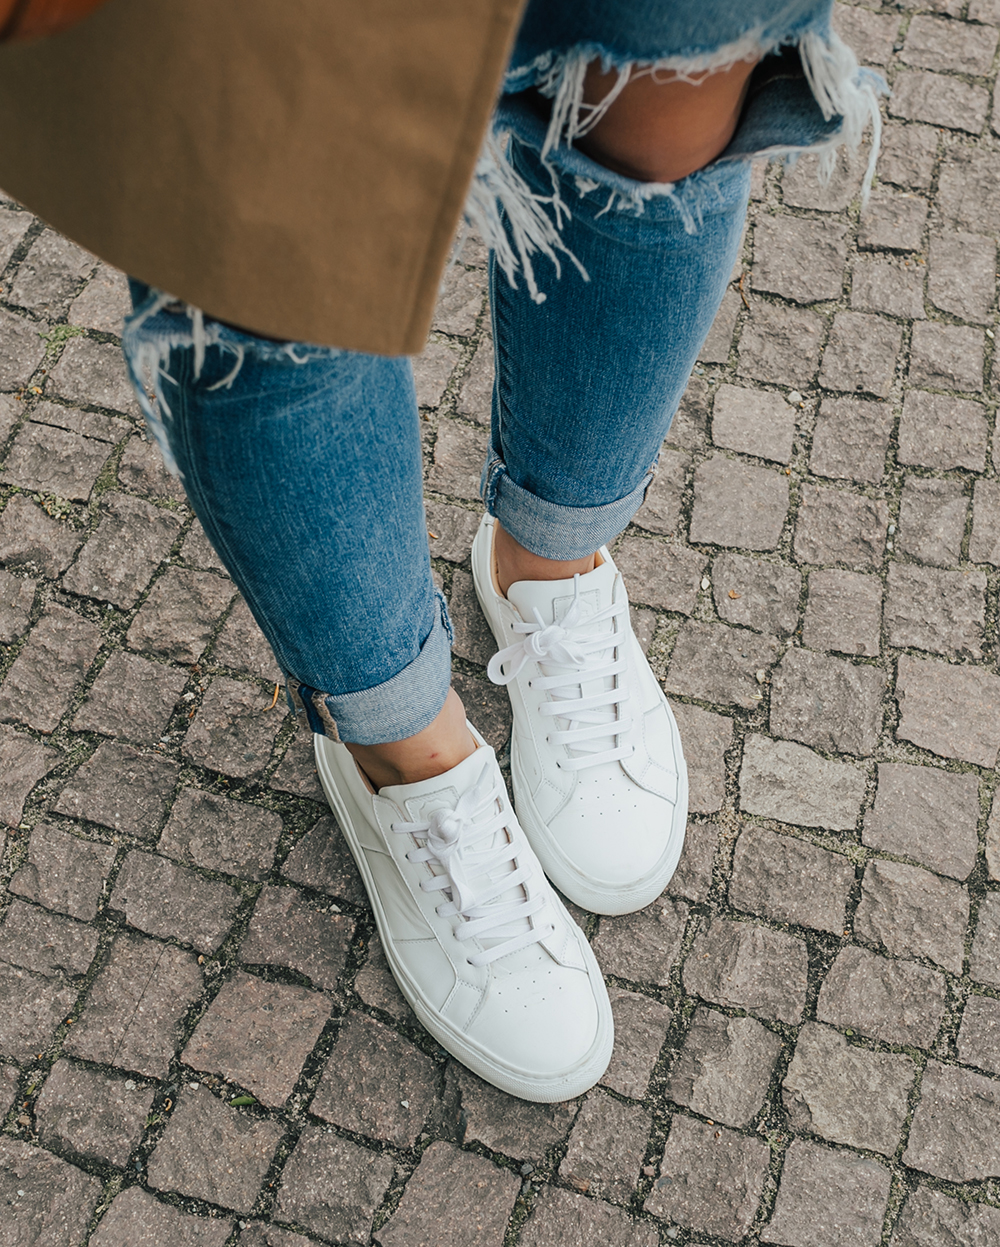 livvyland-blog-olivia-watson-scandinavia-princess-cruise-berlin-germany-what-to-do-day-trip-best-sneakers-for-travel